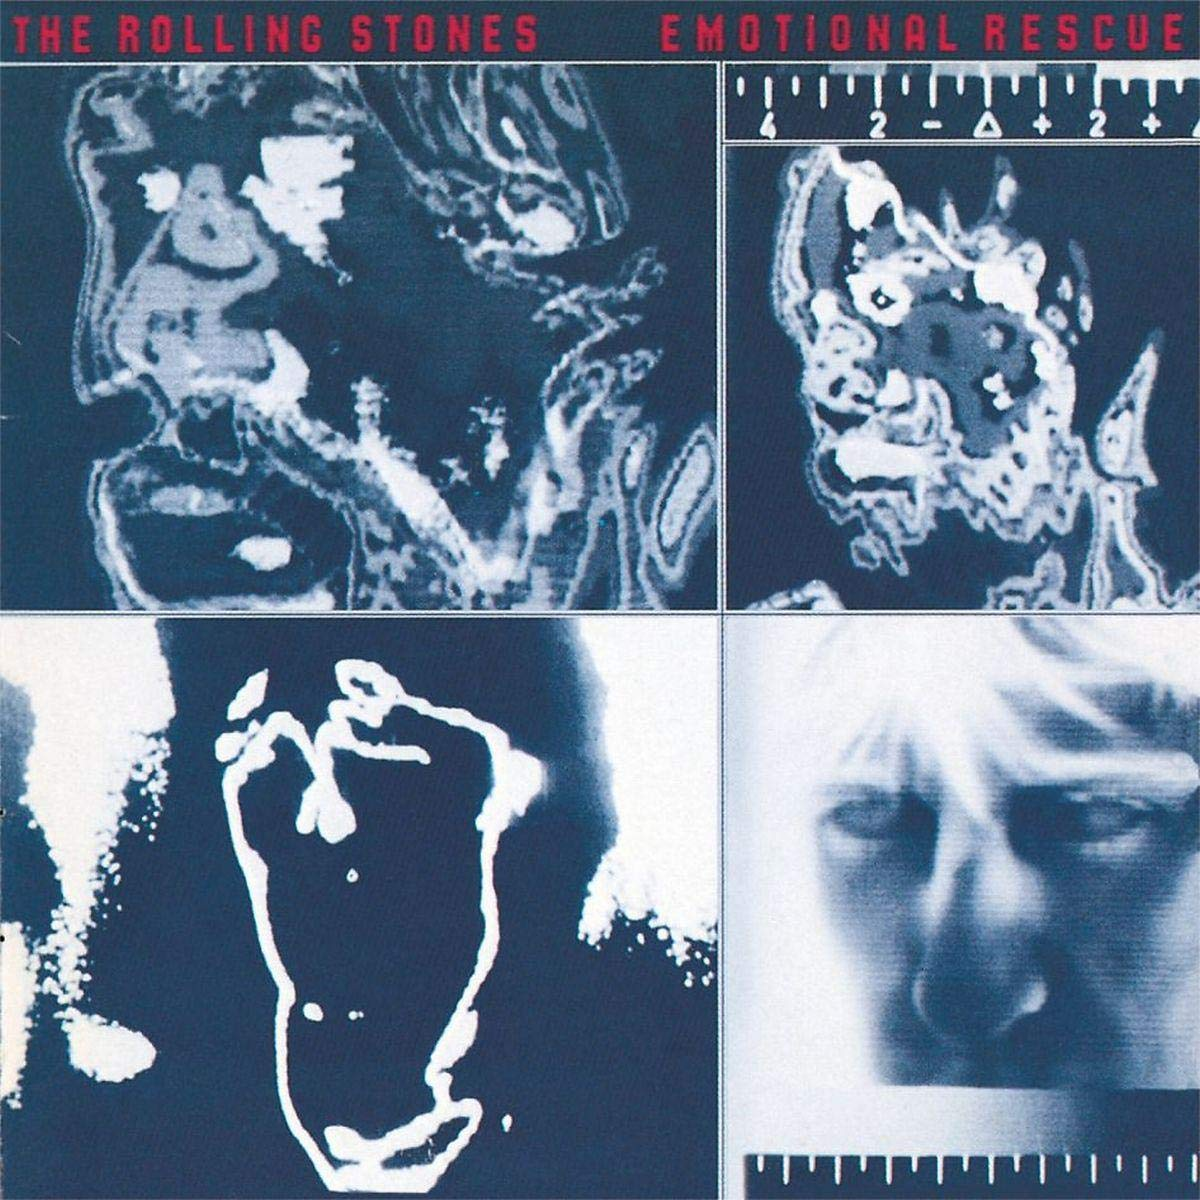 The Rolling Stones - Emotional Rescue [Remastered] - Amazon.com Music